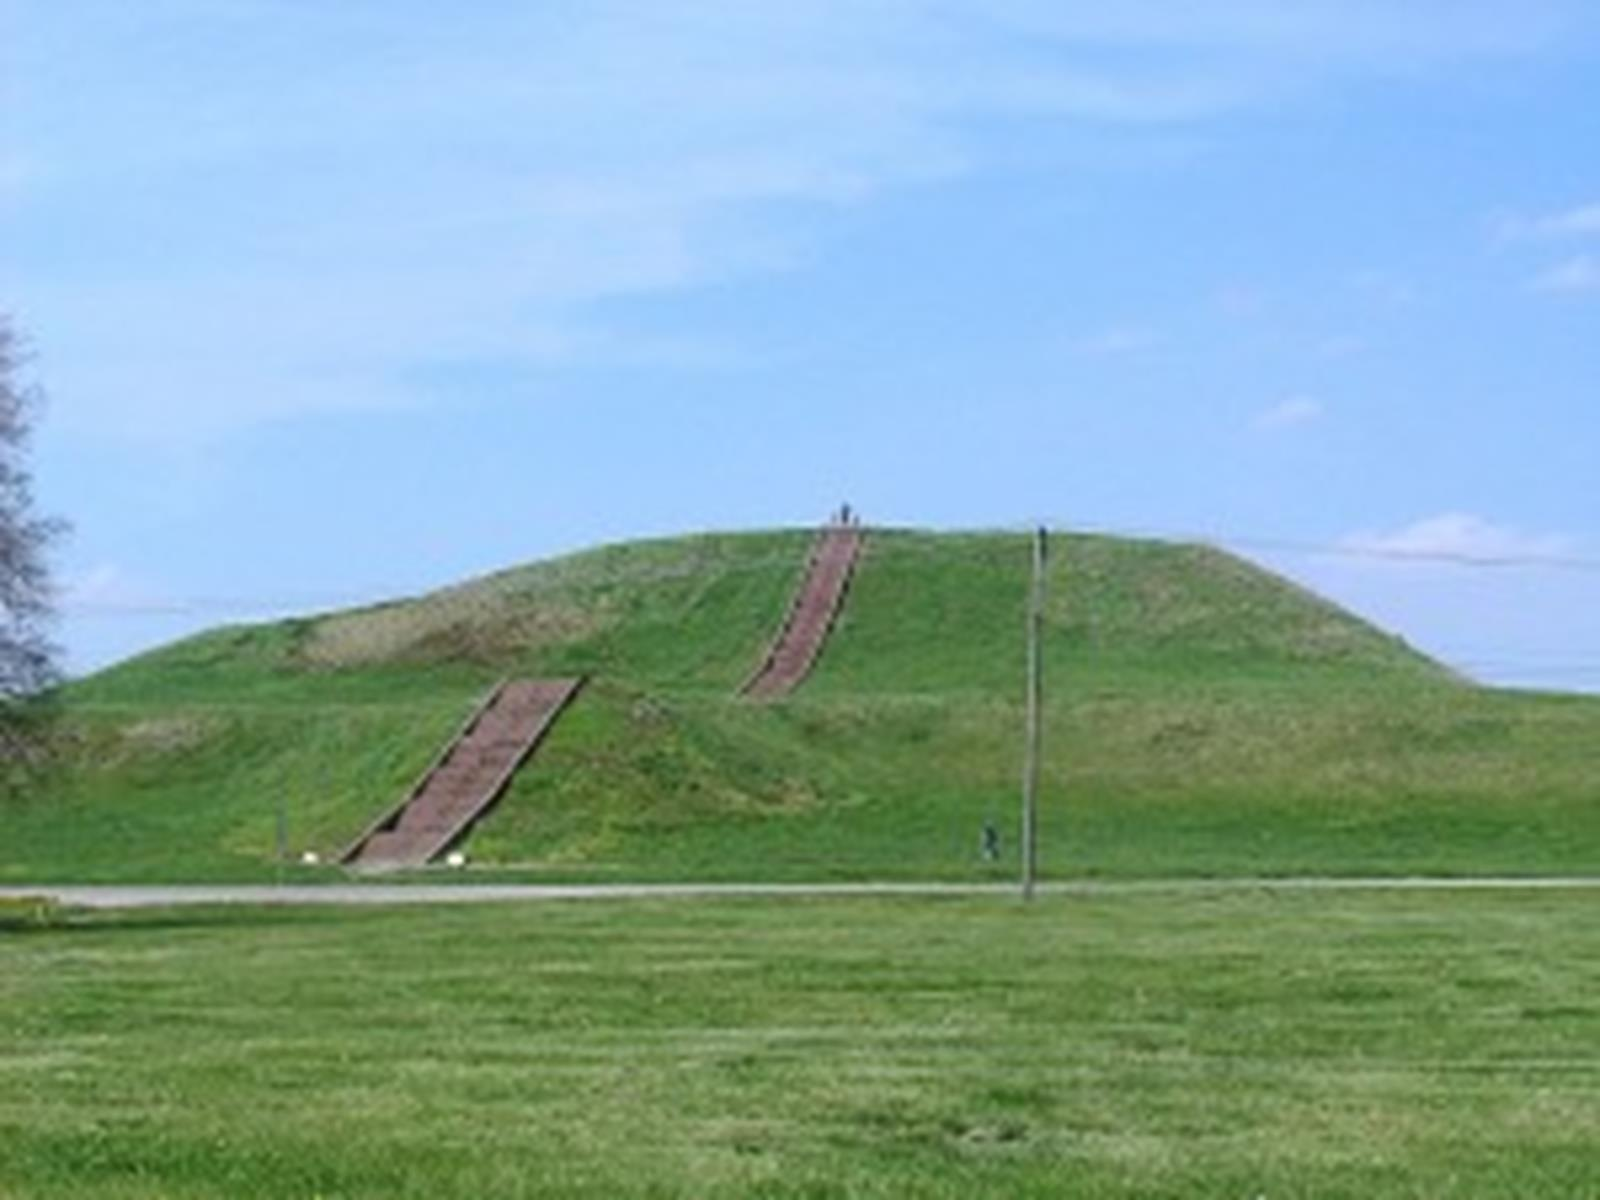 Monks Mound is part of the Cahokia Mounds State Historical Site